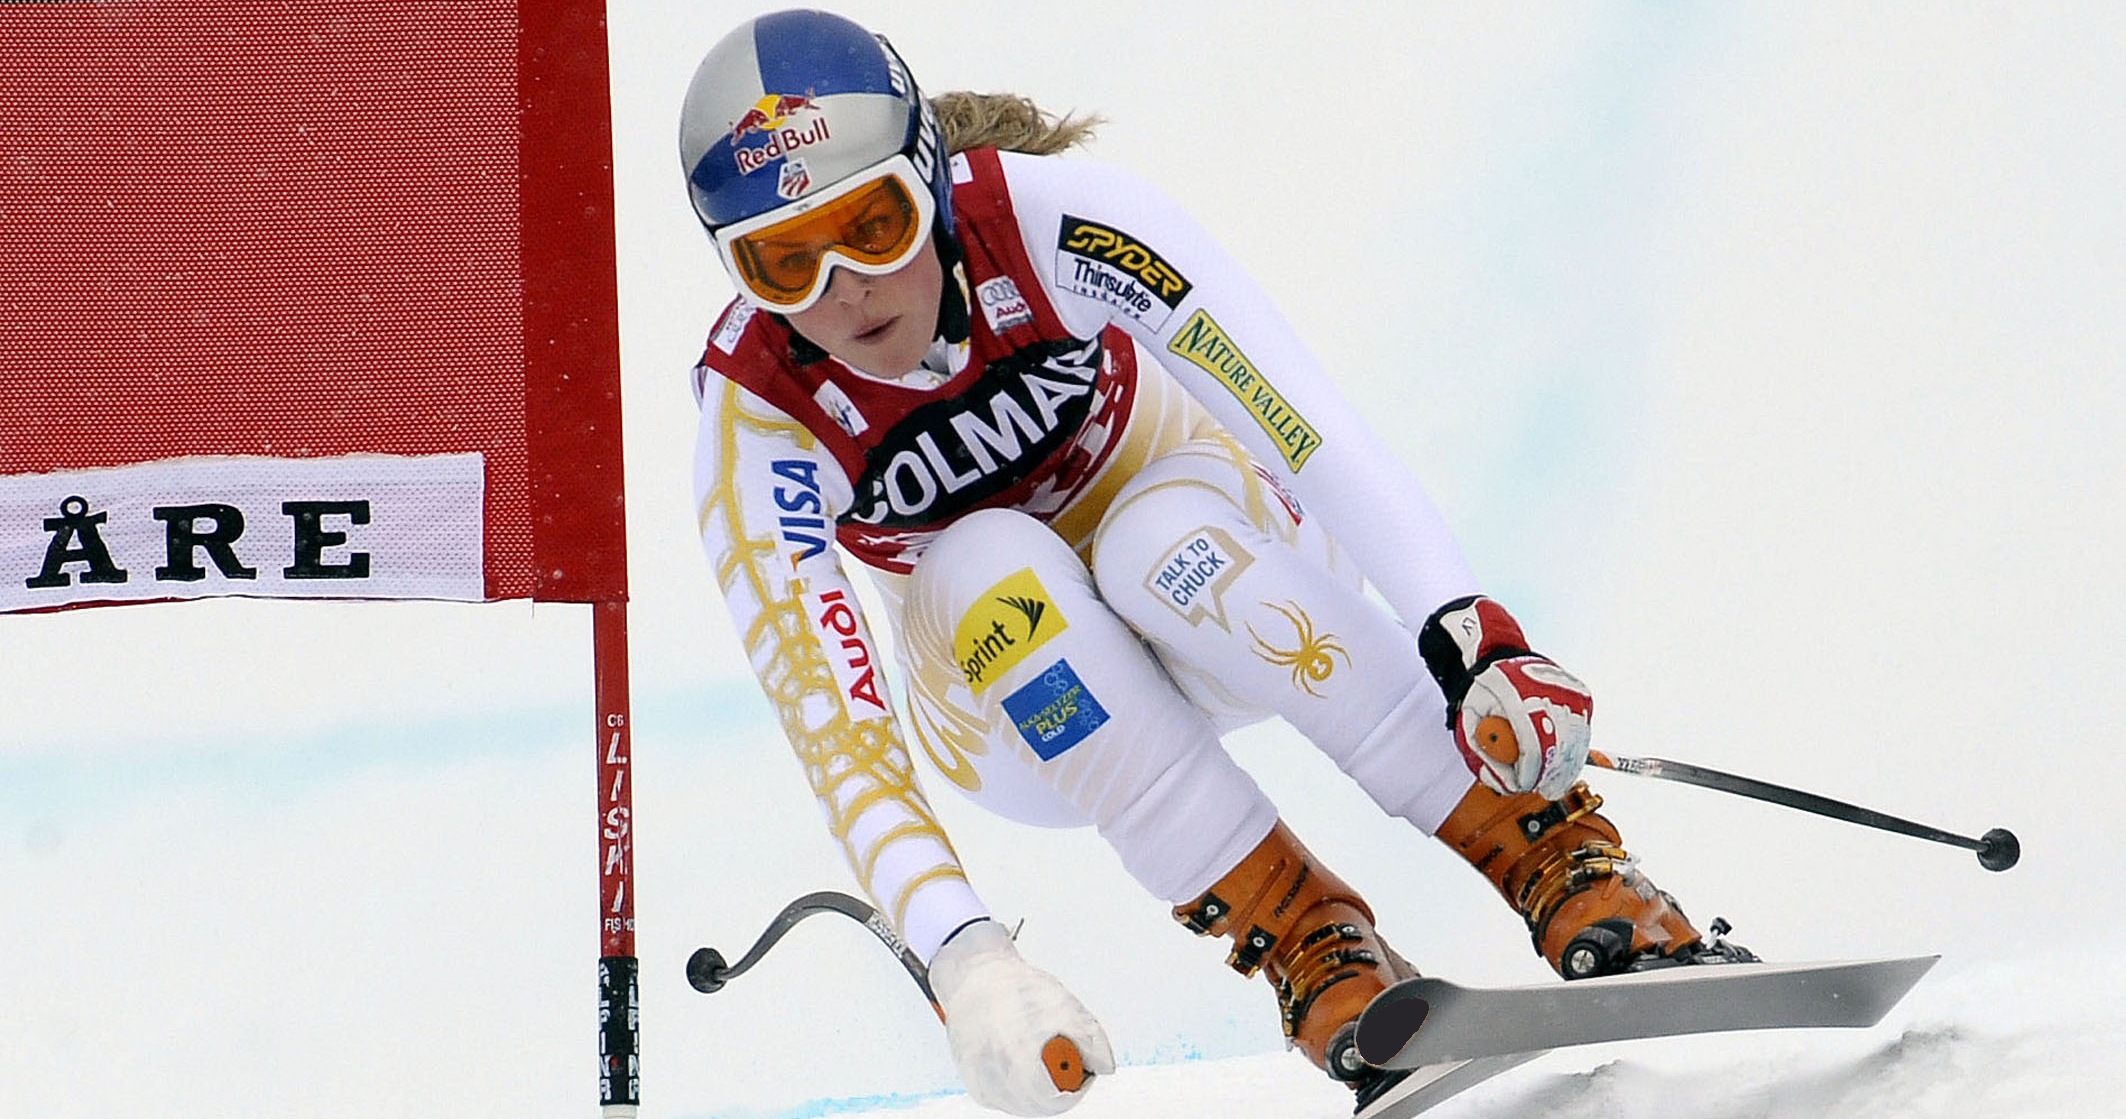 Lindsey Vonn won the World Cup downhill title in Are, Sweden in 2009. Currently second in the downhill standings, she is gunning for her ninth World Cup downhill title Wednesday in Are.